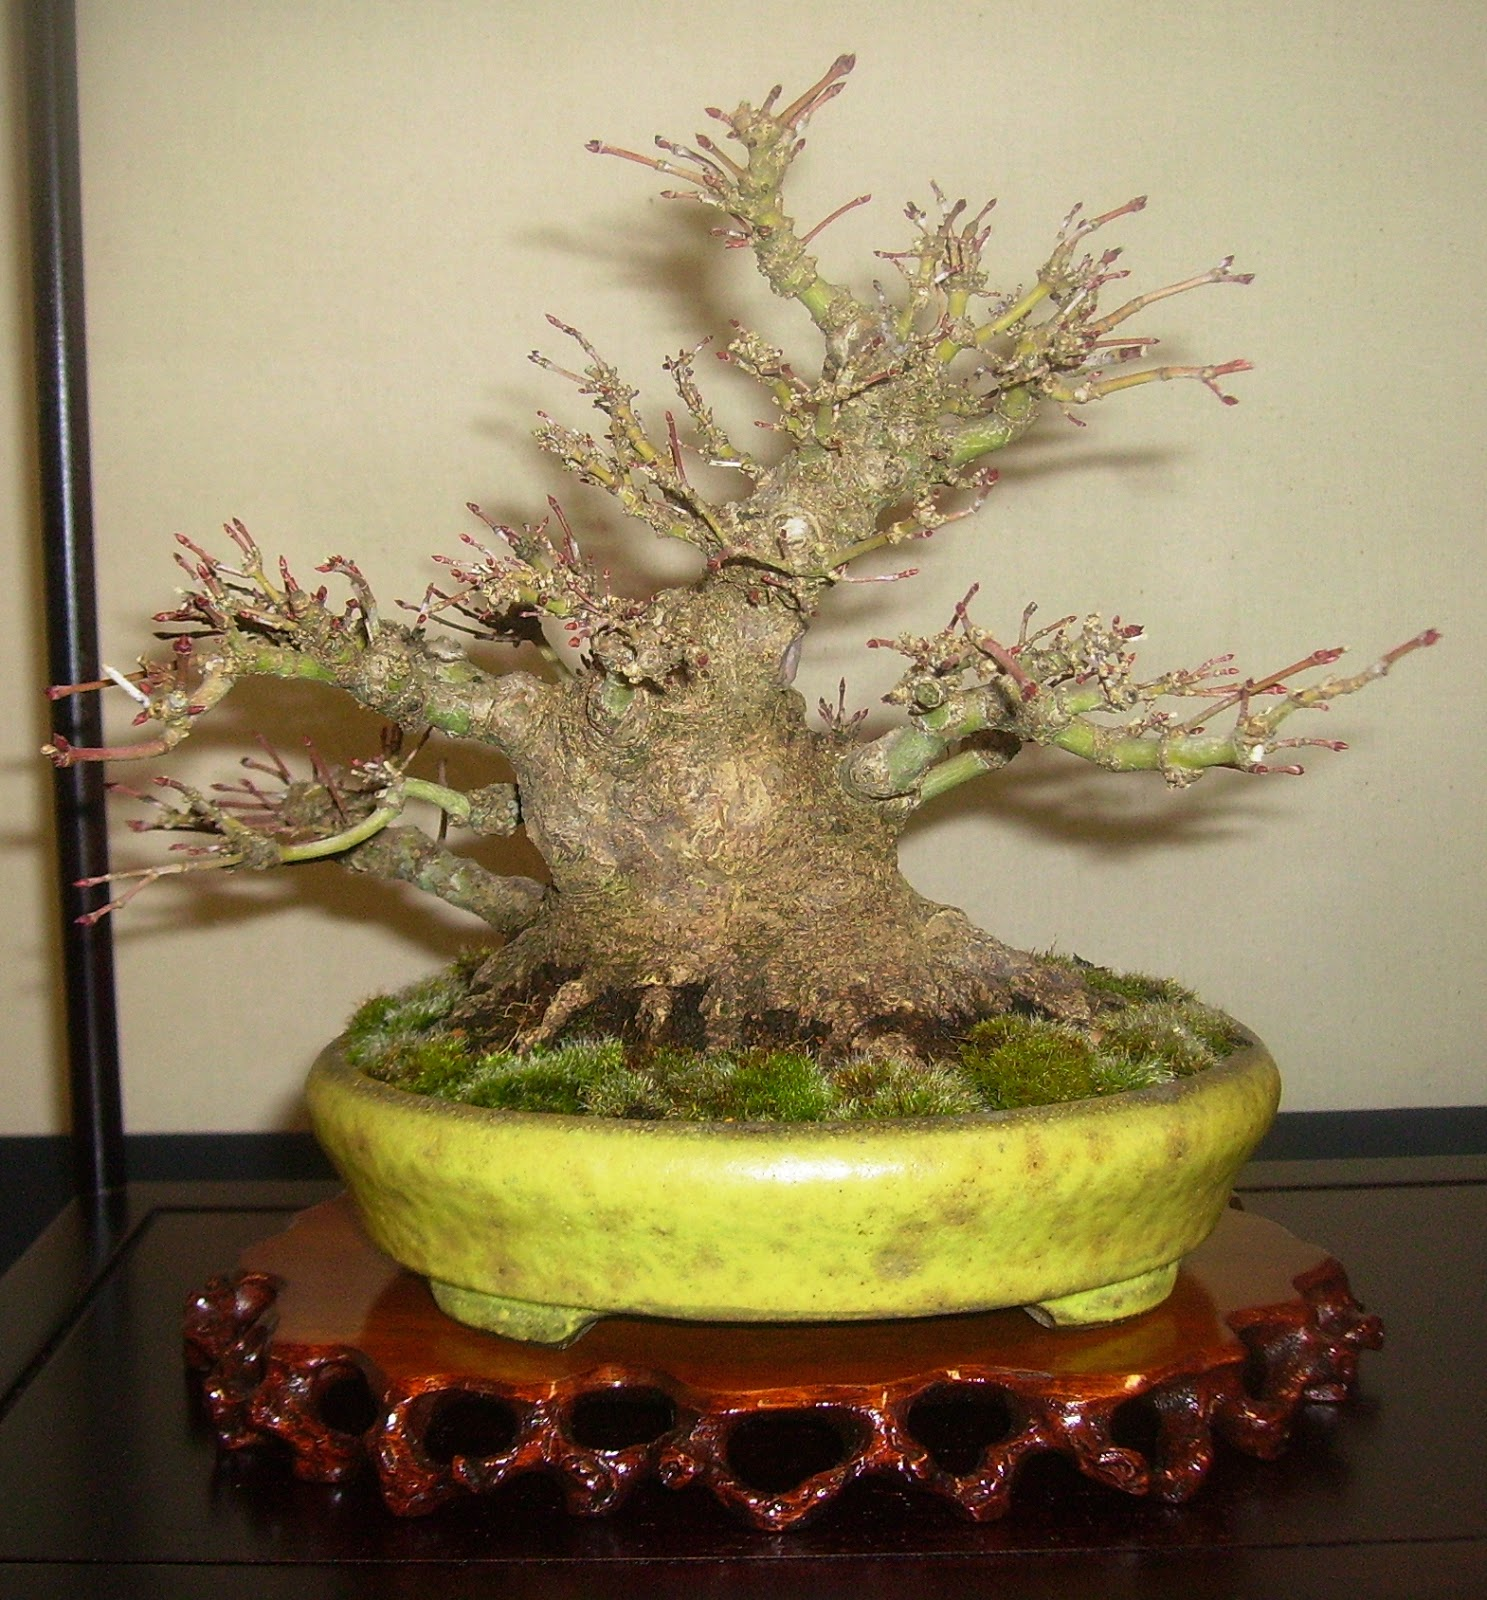 Bespoke Bonsai Stands March 2013